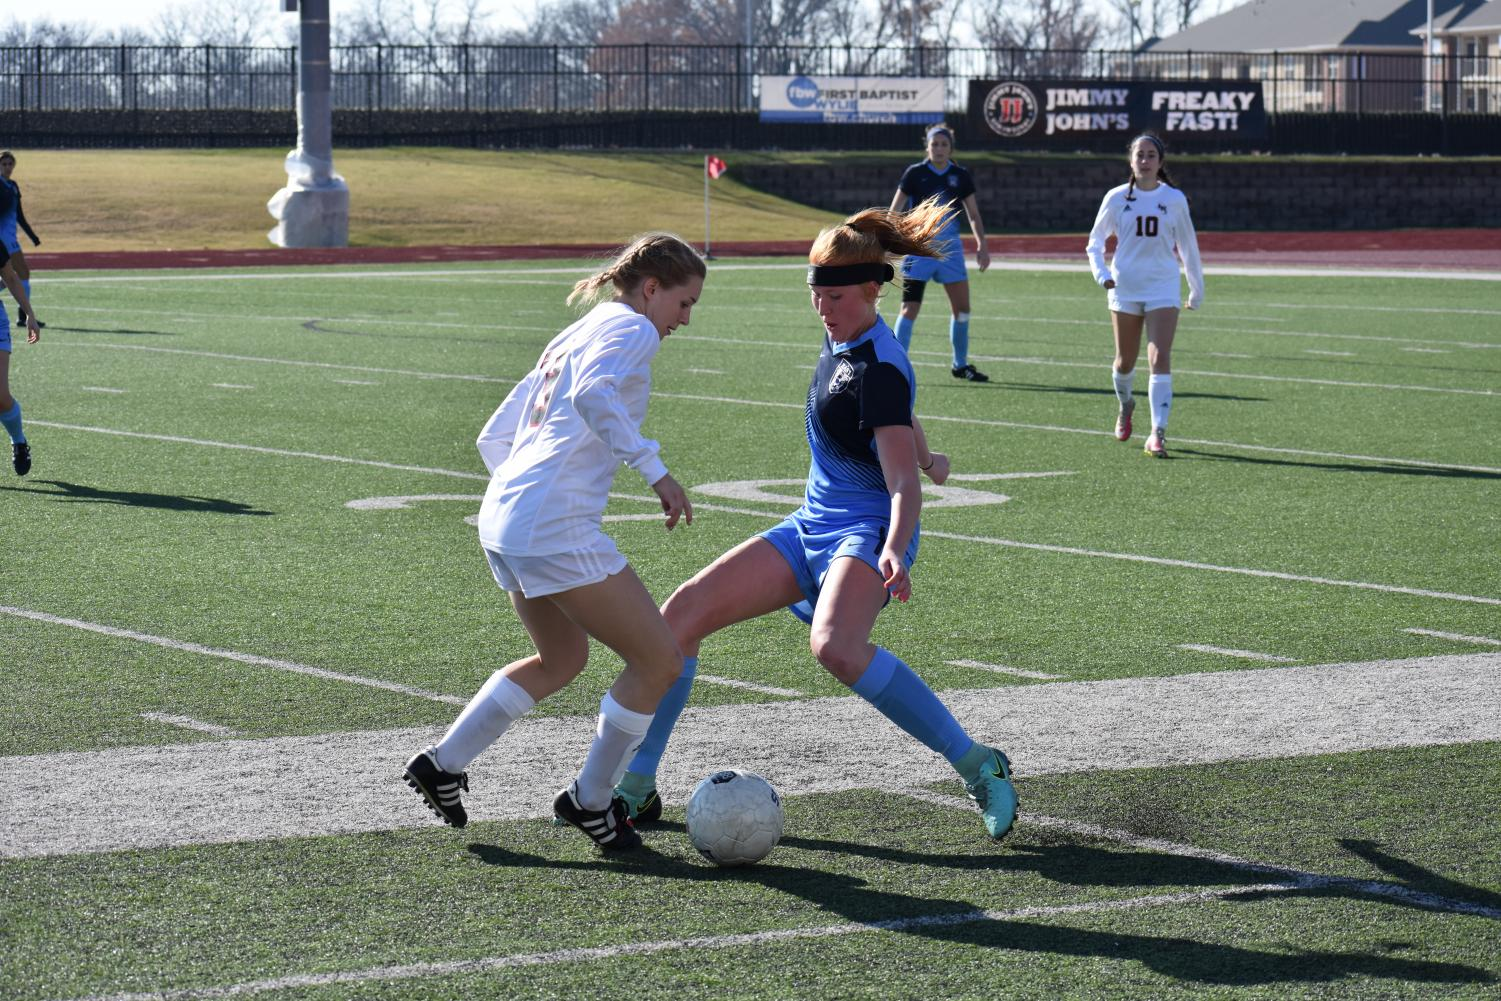 Defeating defender // Stopping a break away, junior Sam Springfield looks to gain possession against a Lake Highlands forward in the final game in the Andie-Studley Memorial showcase. The game ended in a 1-1 tie.